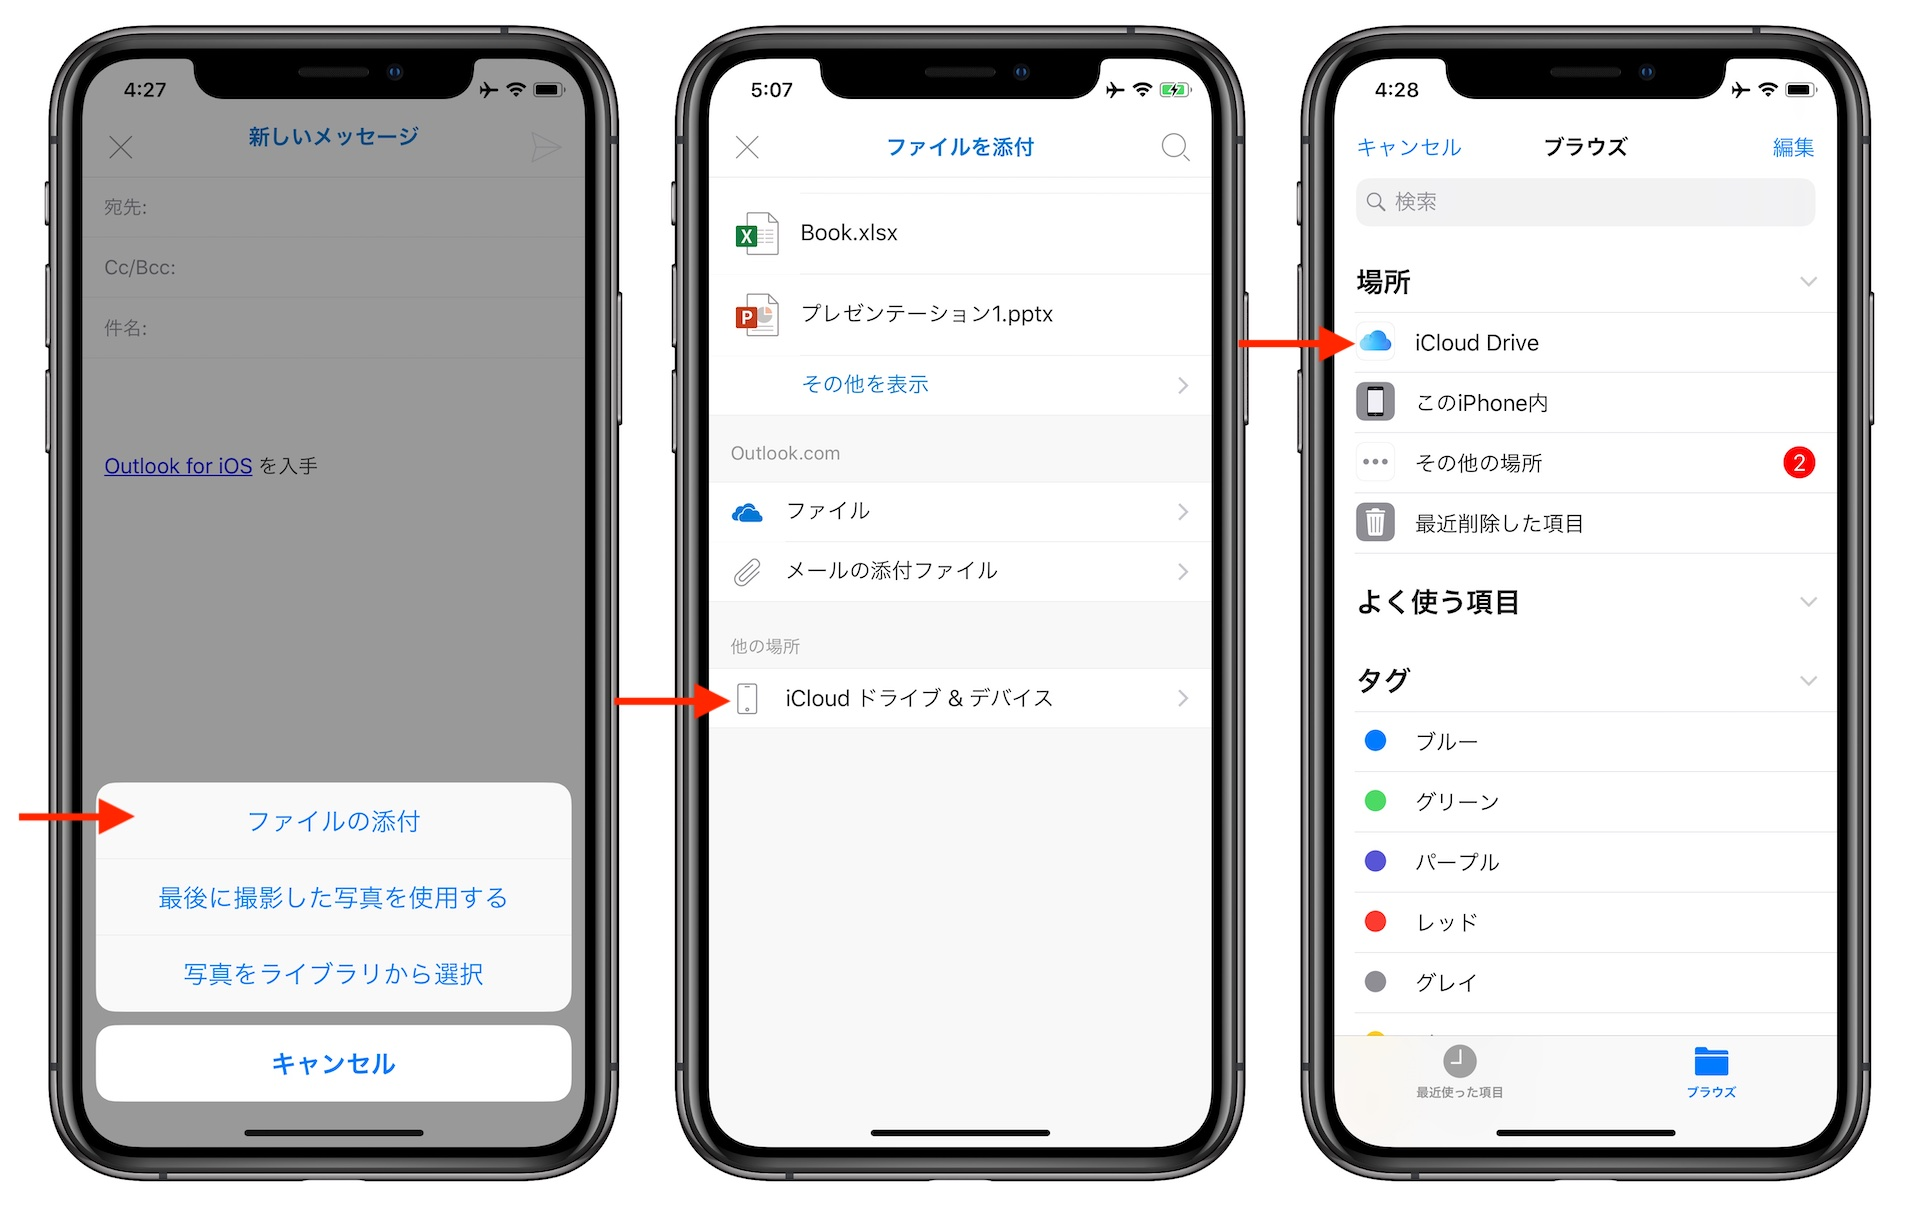 Outlook for iOS support iCloud Drive